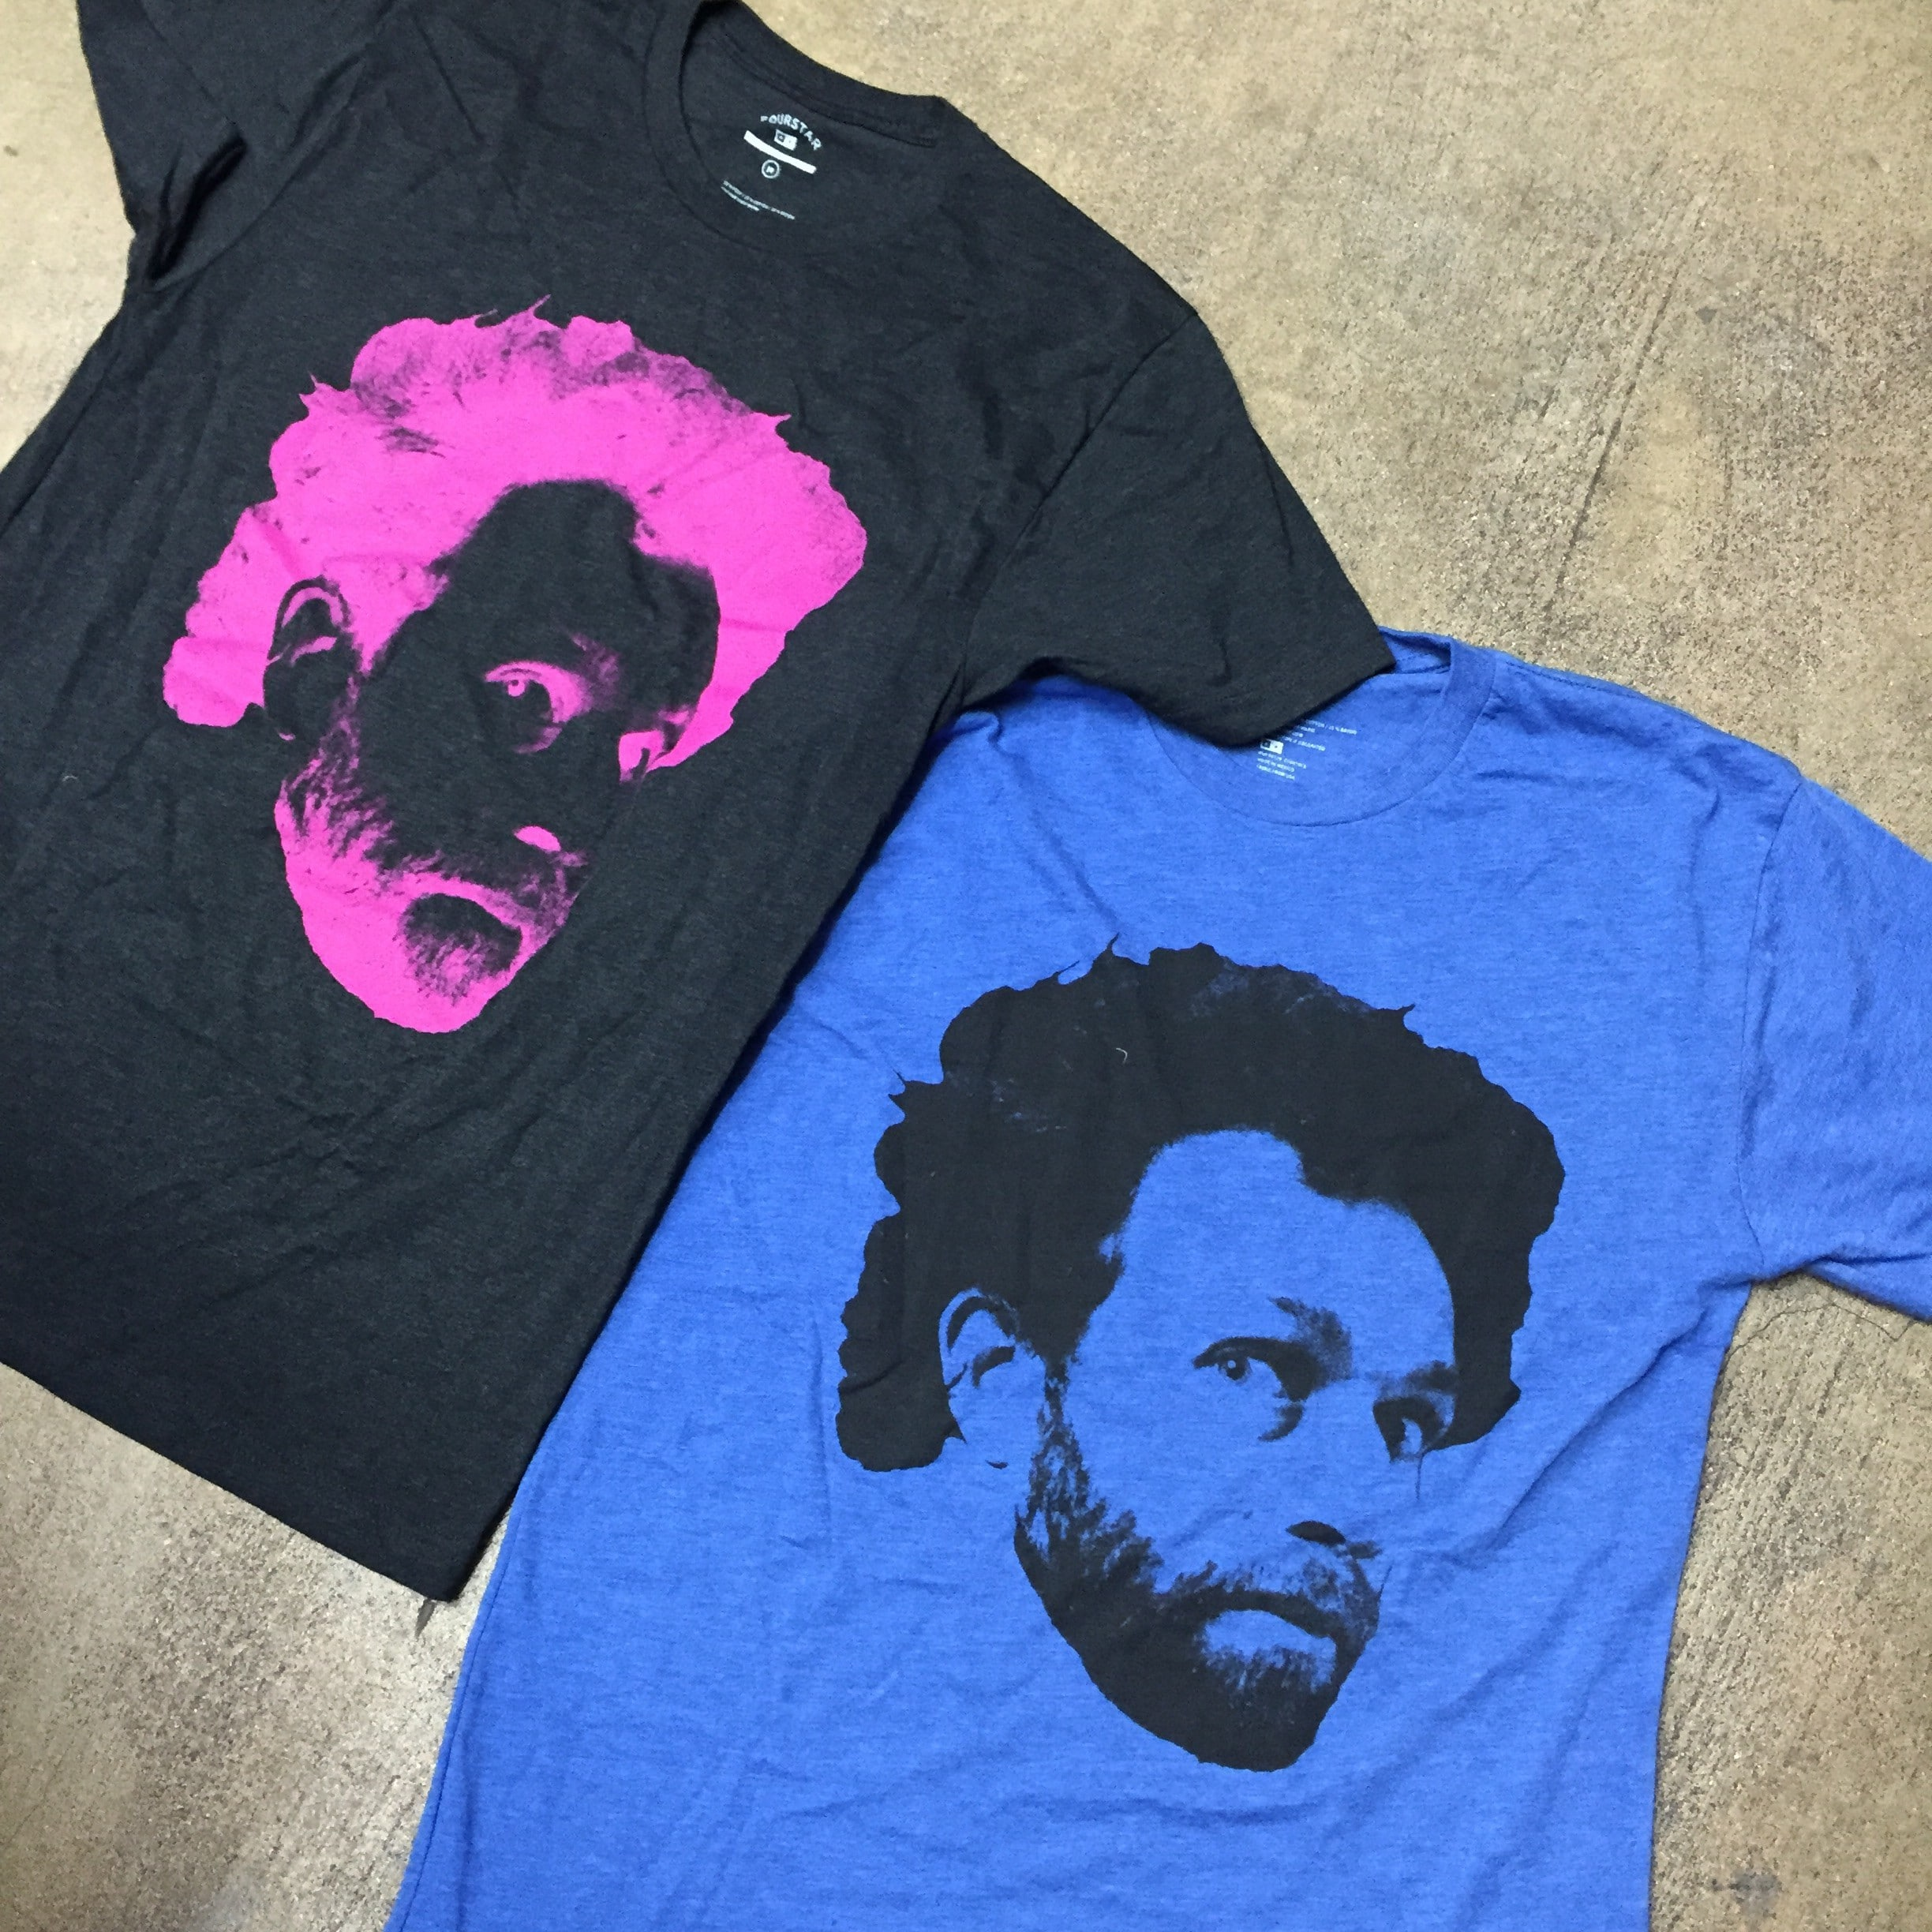 Four Star Mark Gonzales shirts